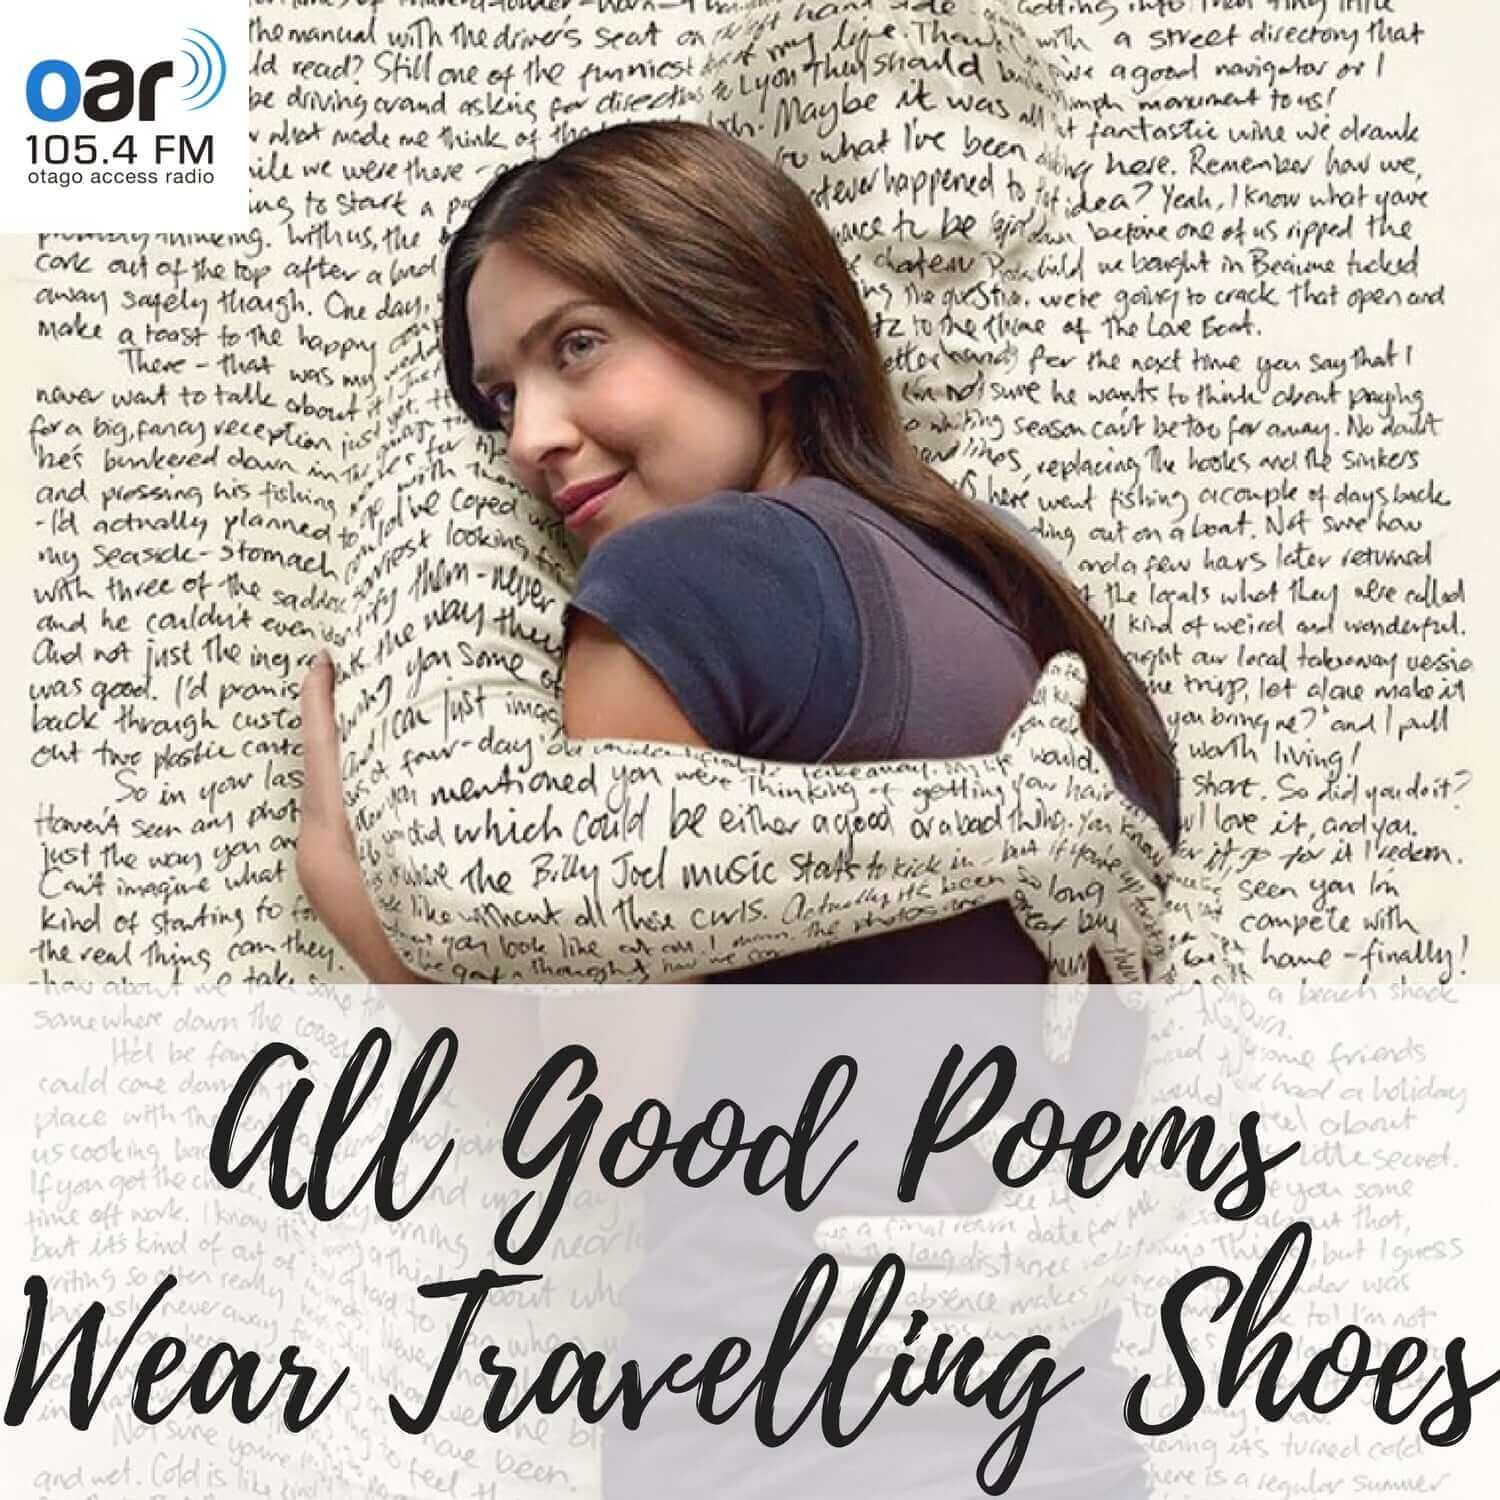 All Good Poems Wear Travelling Shoes